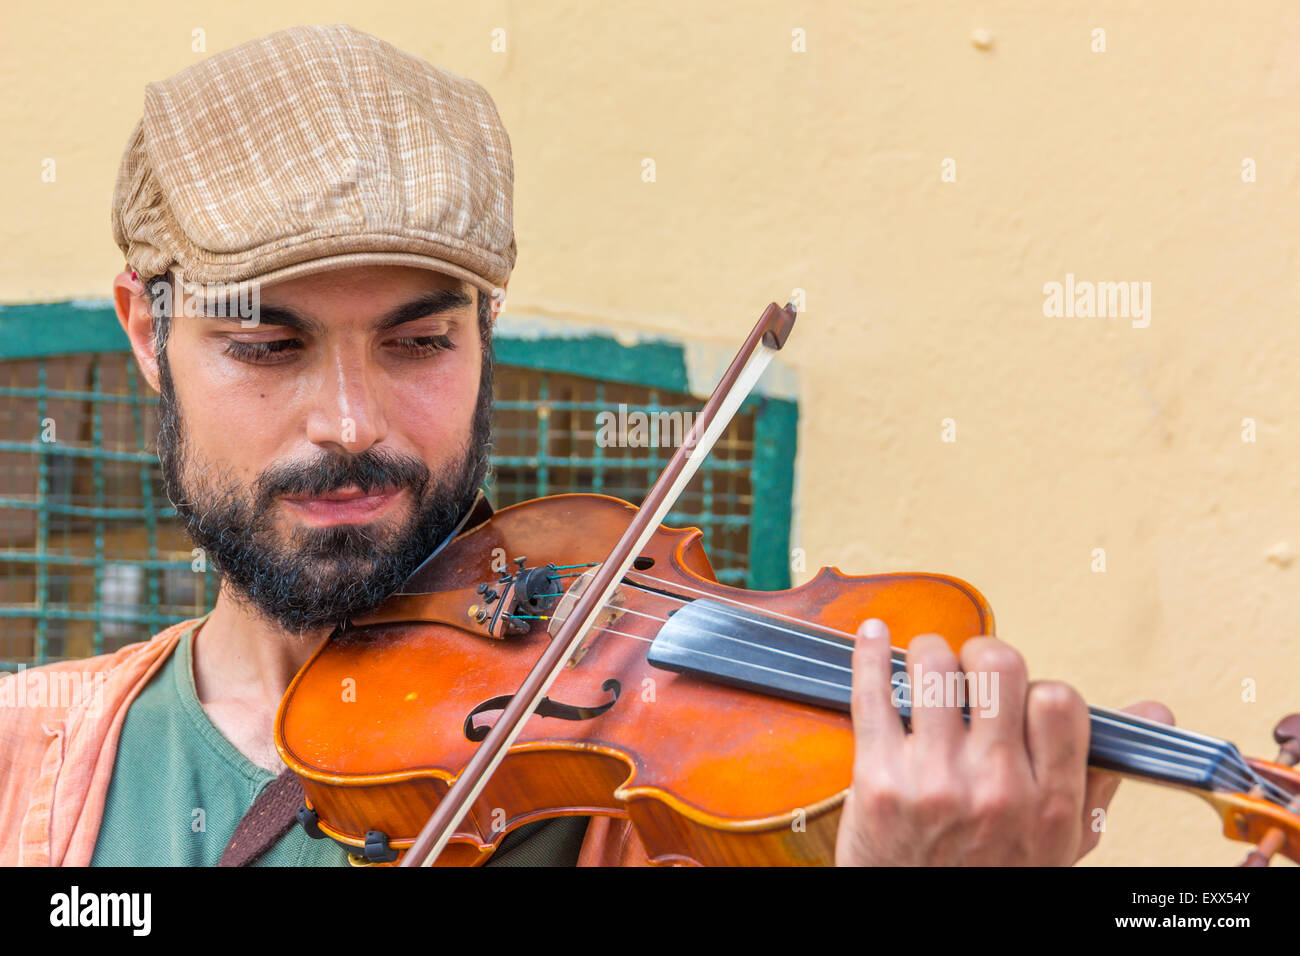 ISTANBUL, TURKEY - MAY 24: A violin man on the street on May 24, 2015 in Istanbul - Stock Image